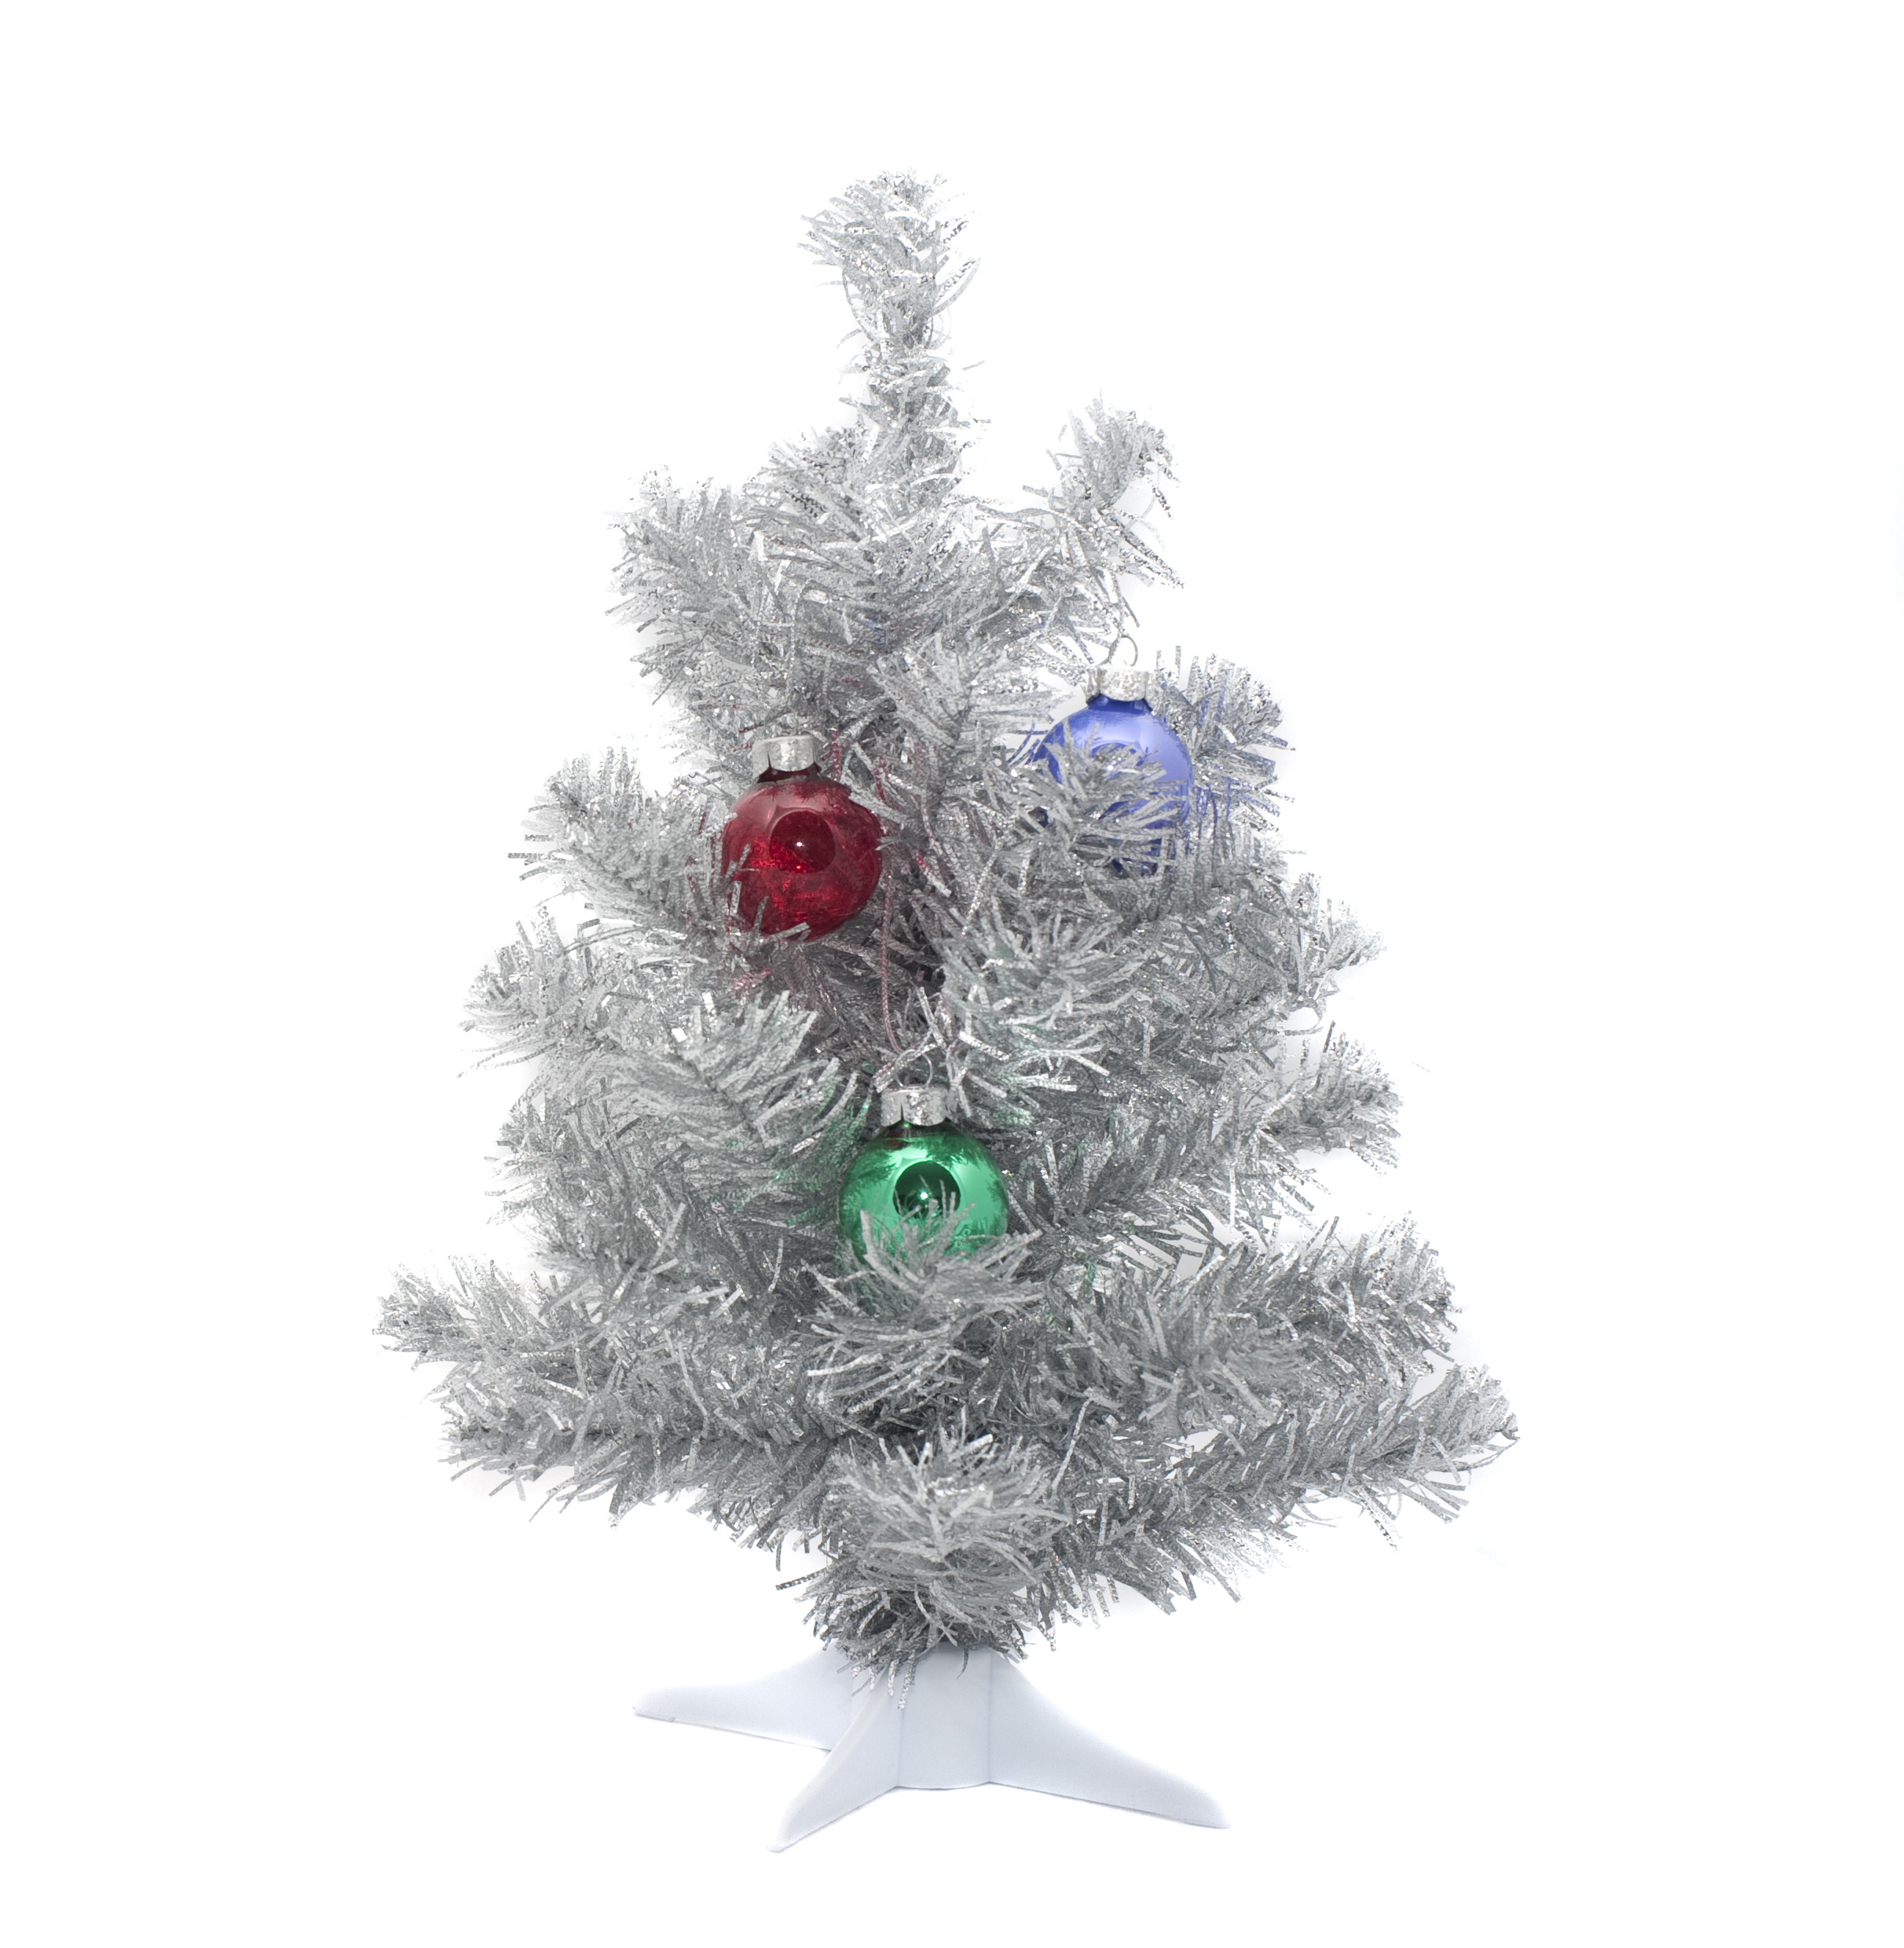 Photo Of Artificial Tree Free Christmas Images